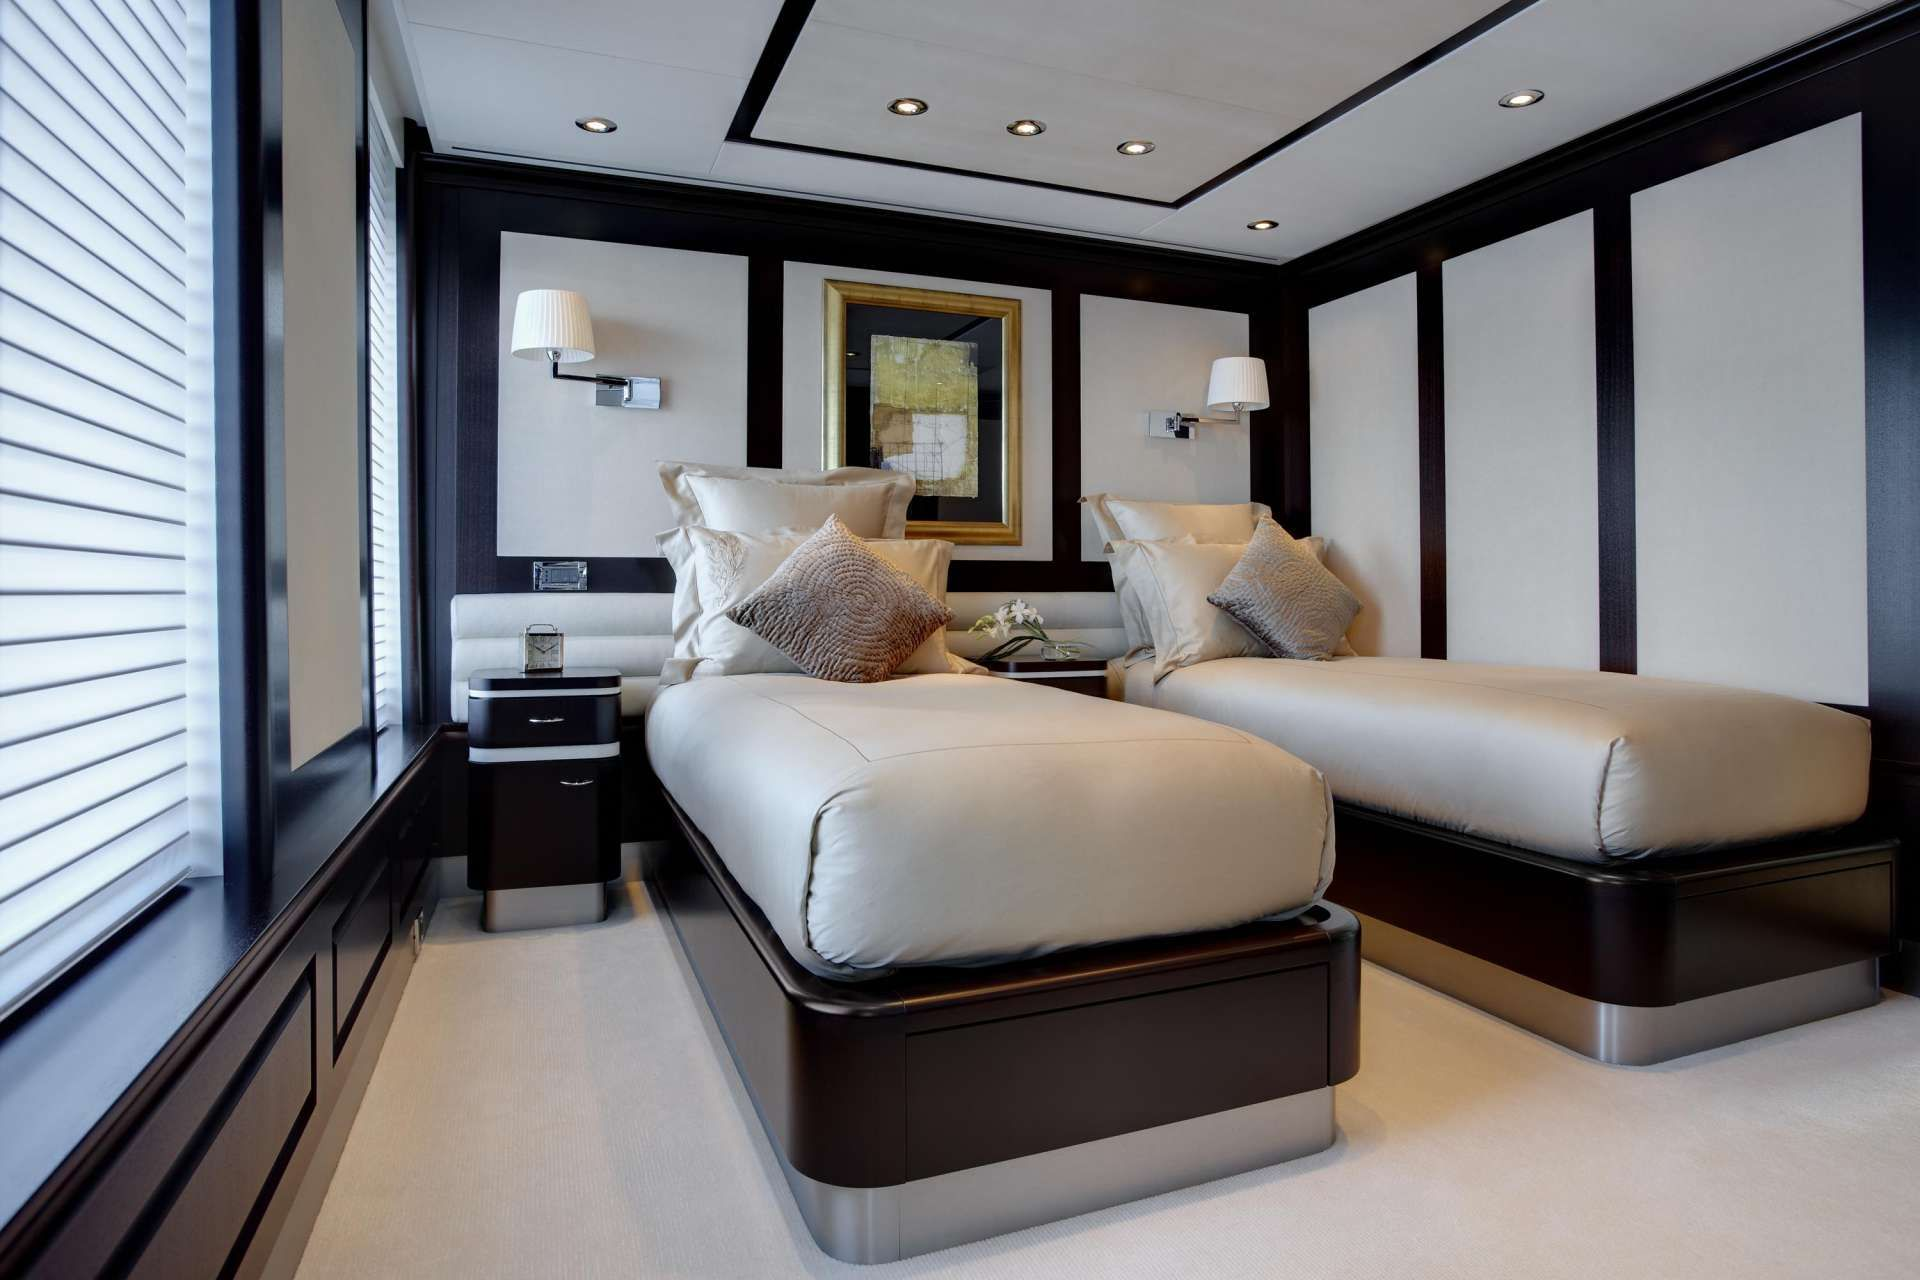 yacht design idea yachts yacht crystile crys tile luxury